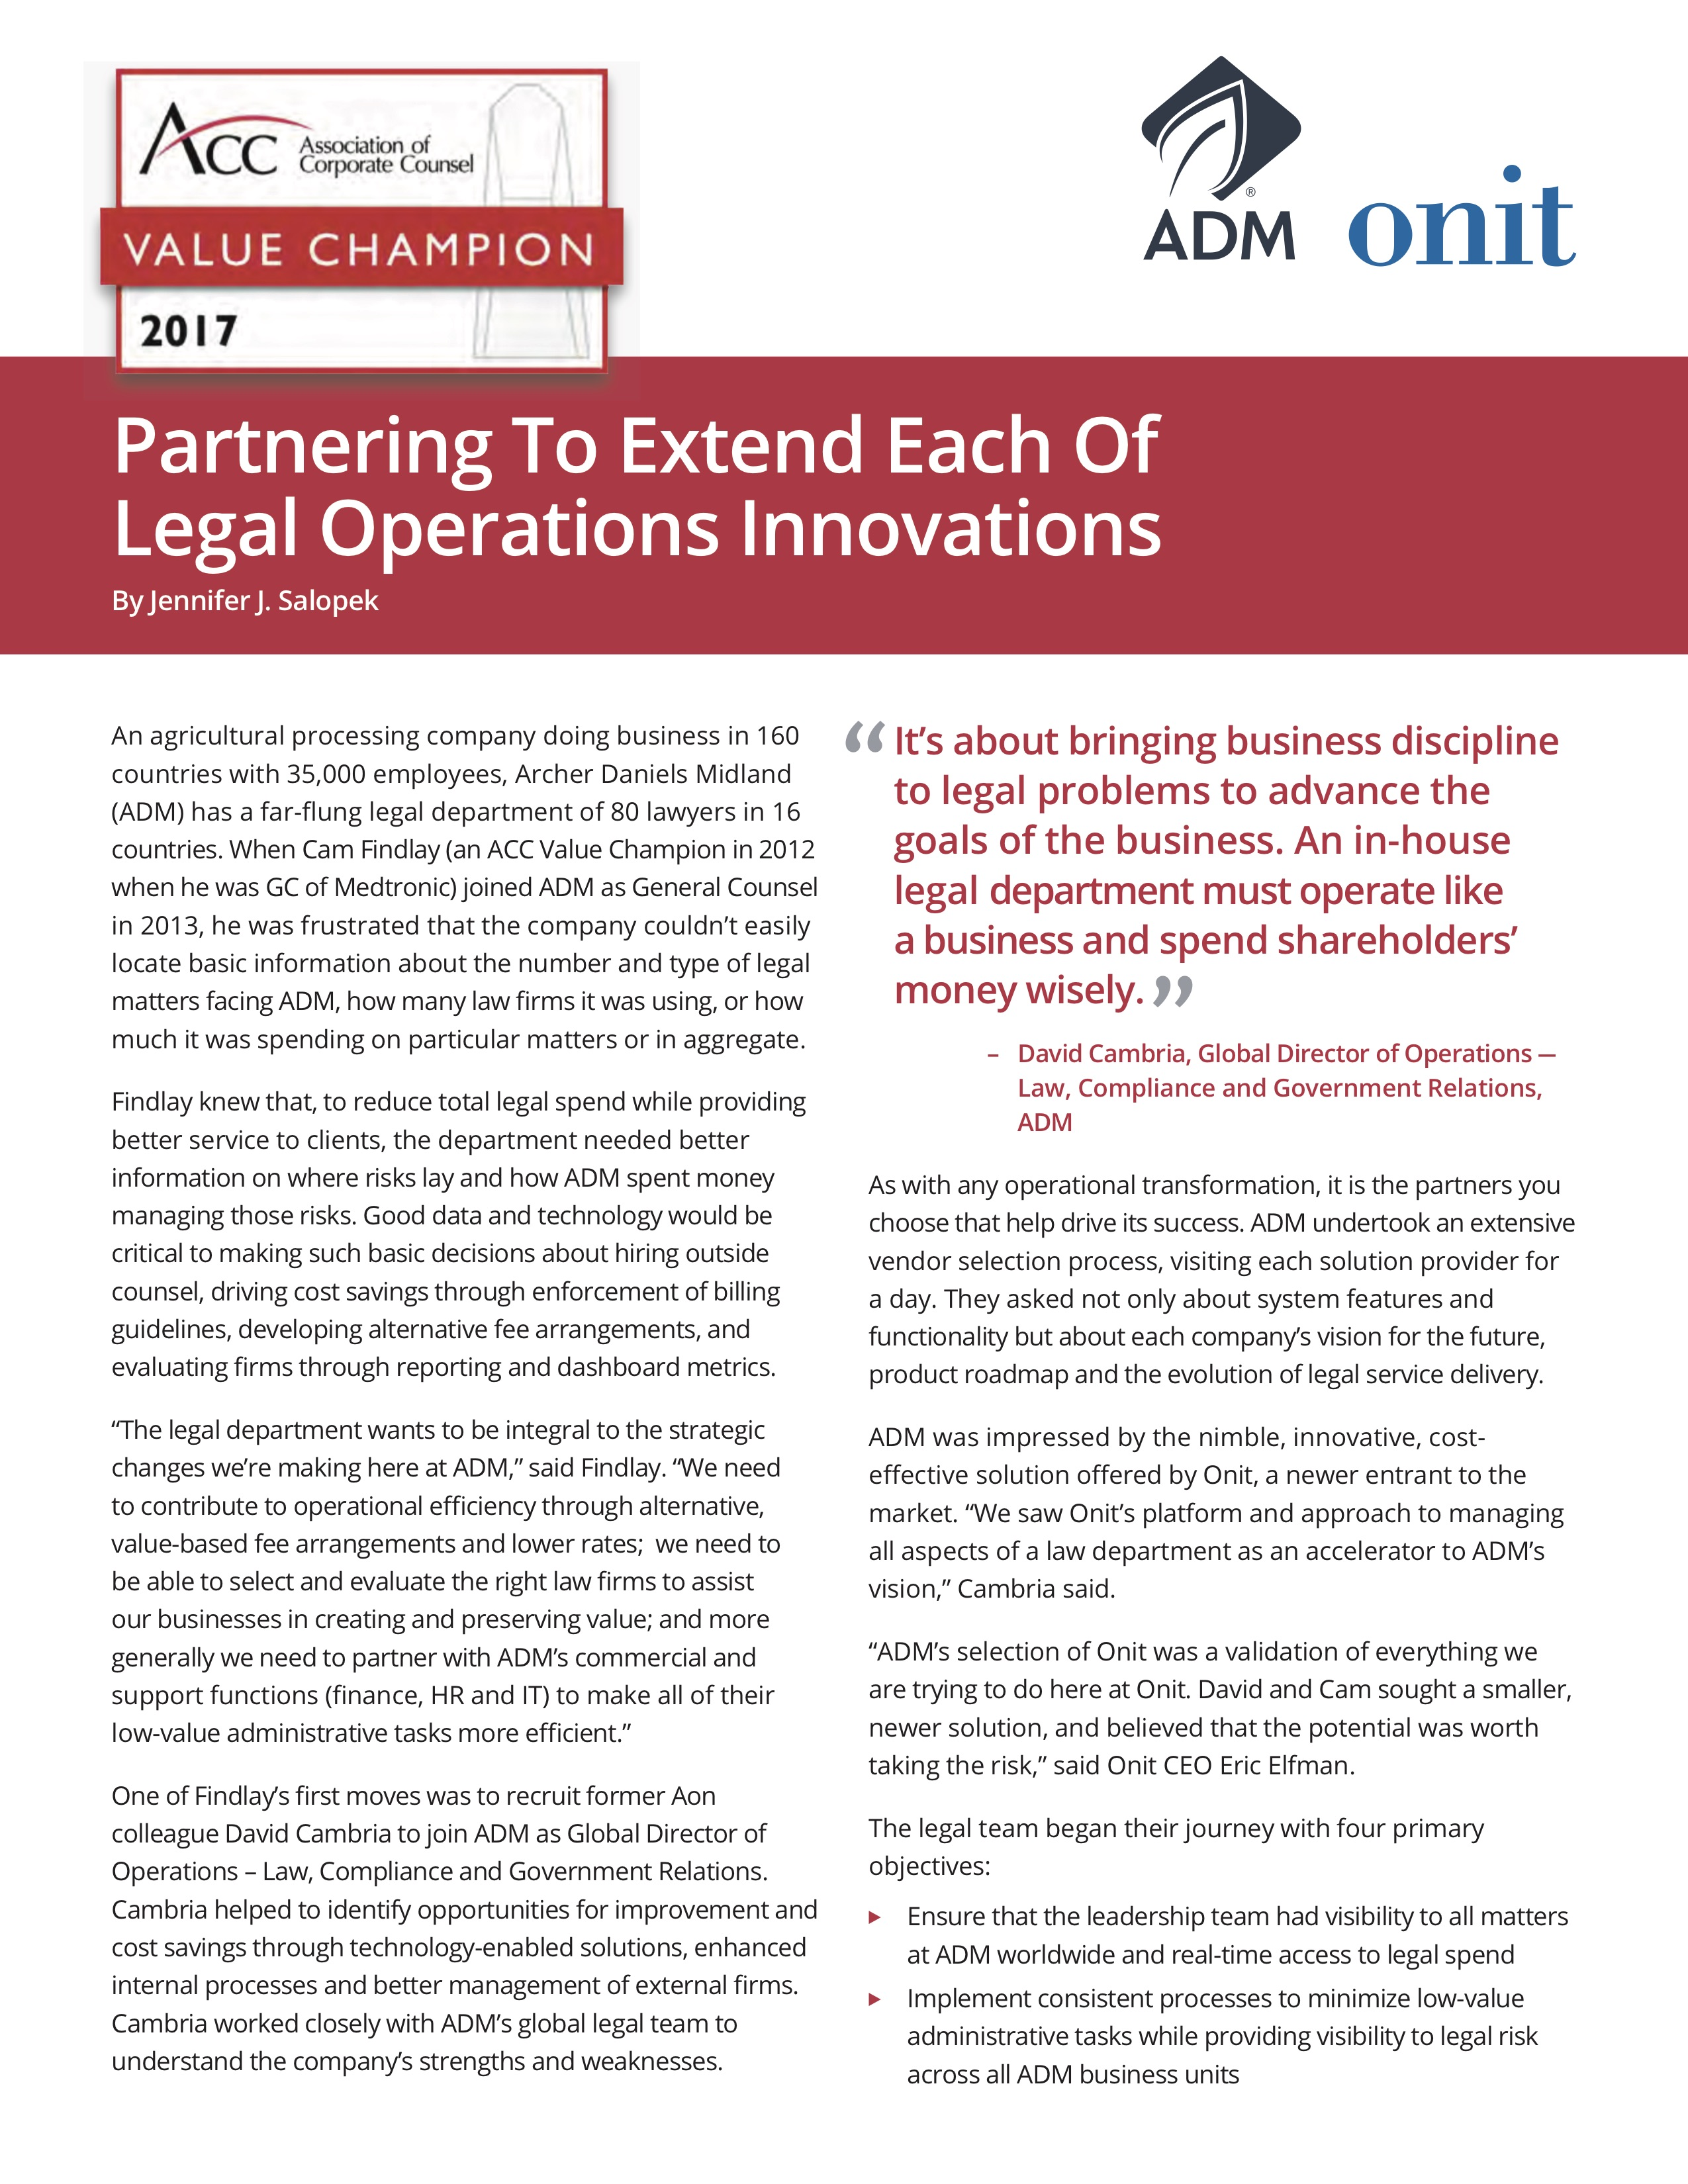 Partnering To Extend Each Of Legal Operations Innovations